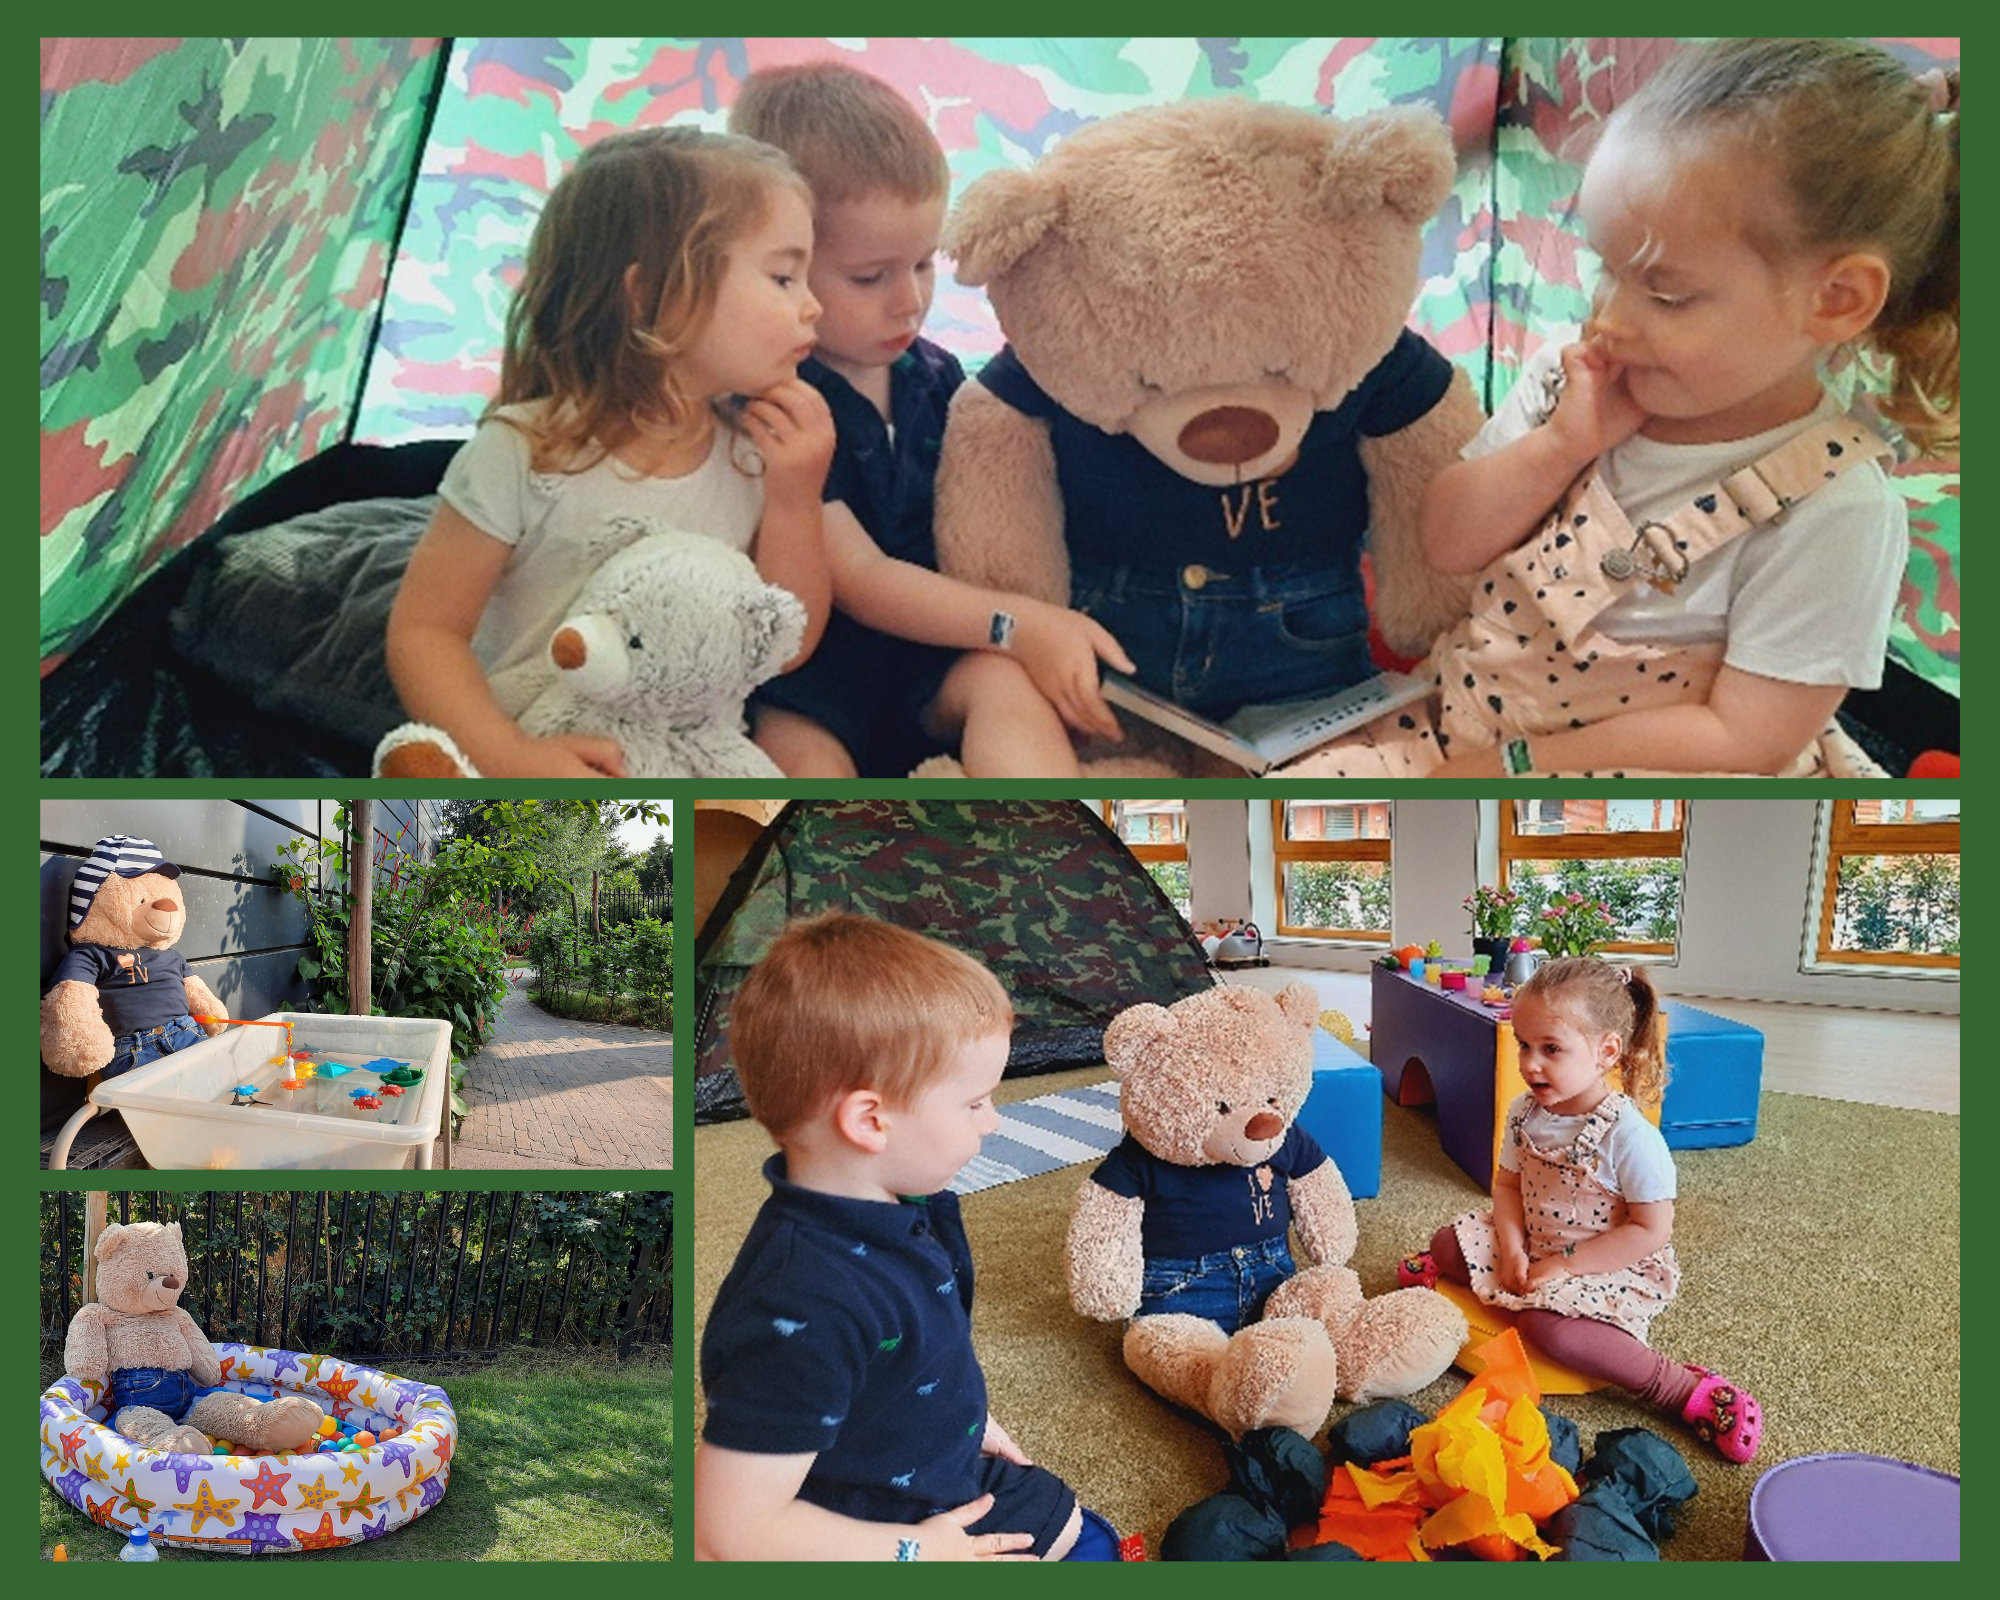 Day care children enjoy themed learning opportunities at Zein International Childcare.